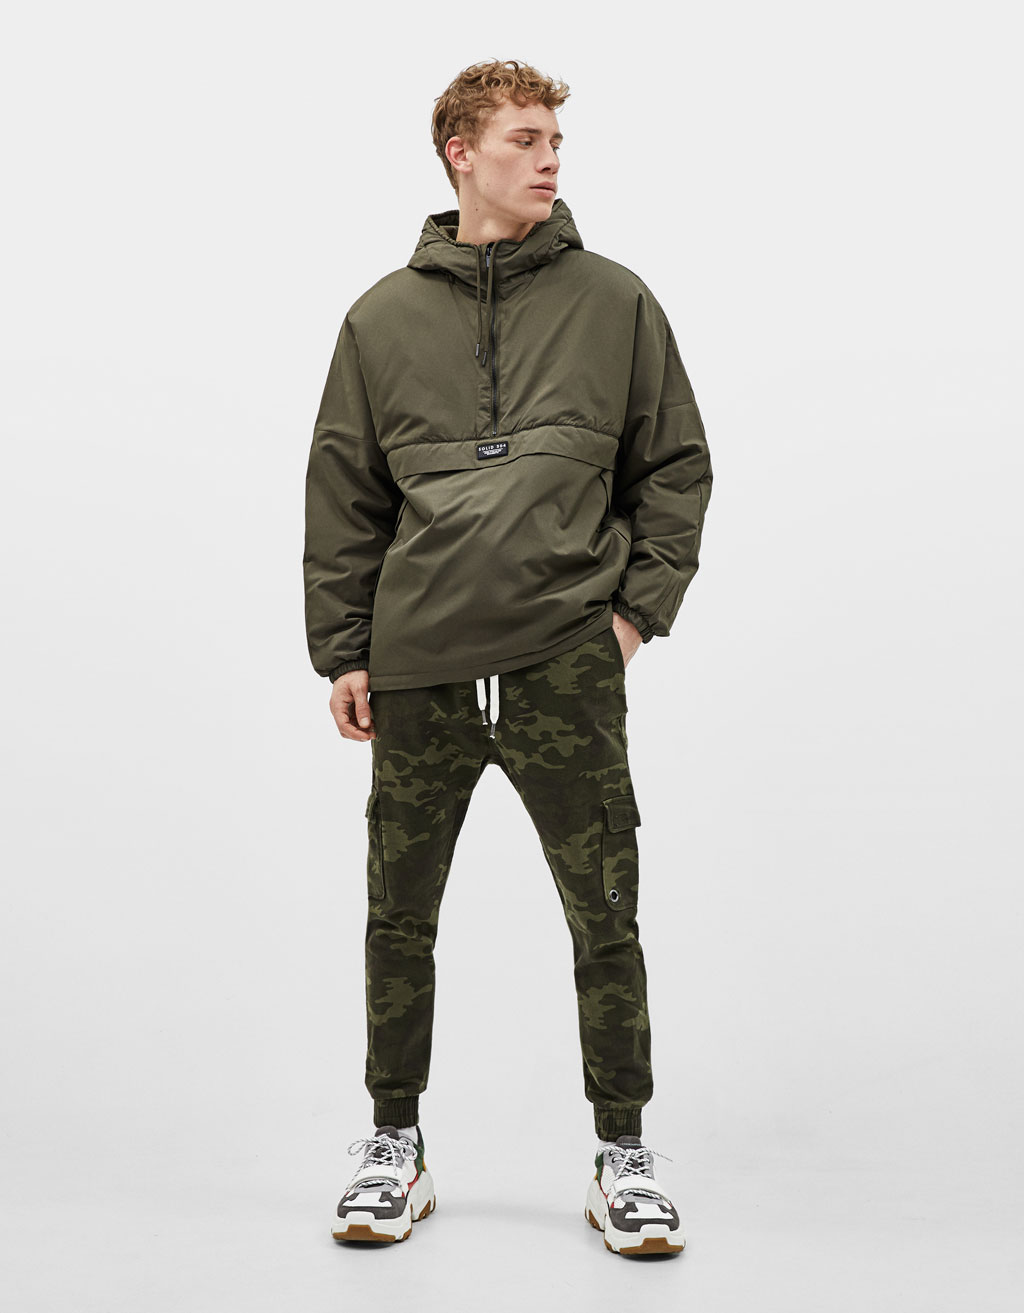 c006bb7313b34 Men's Jackets - Spring Summer 2019 | Bershka